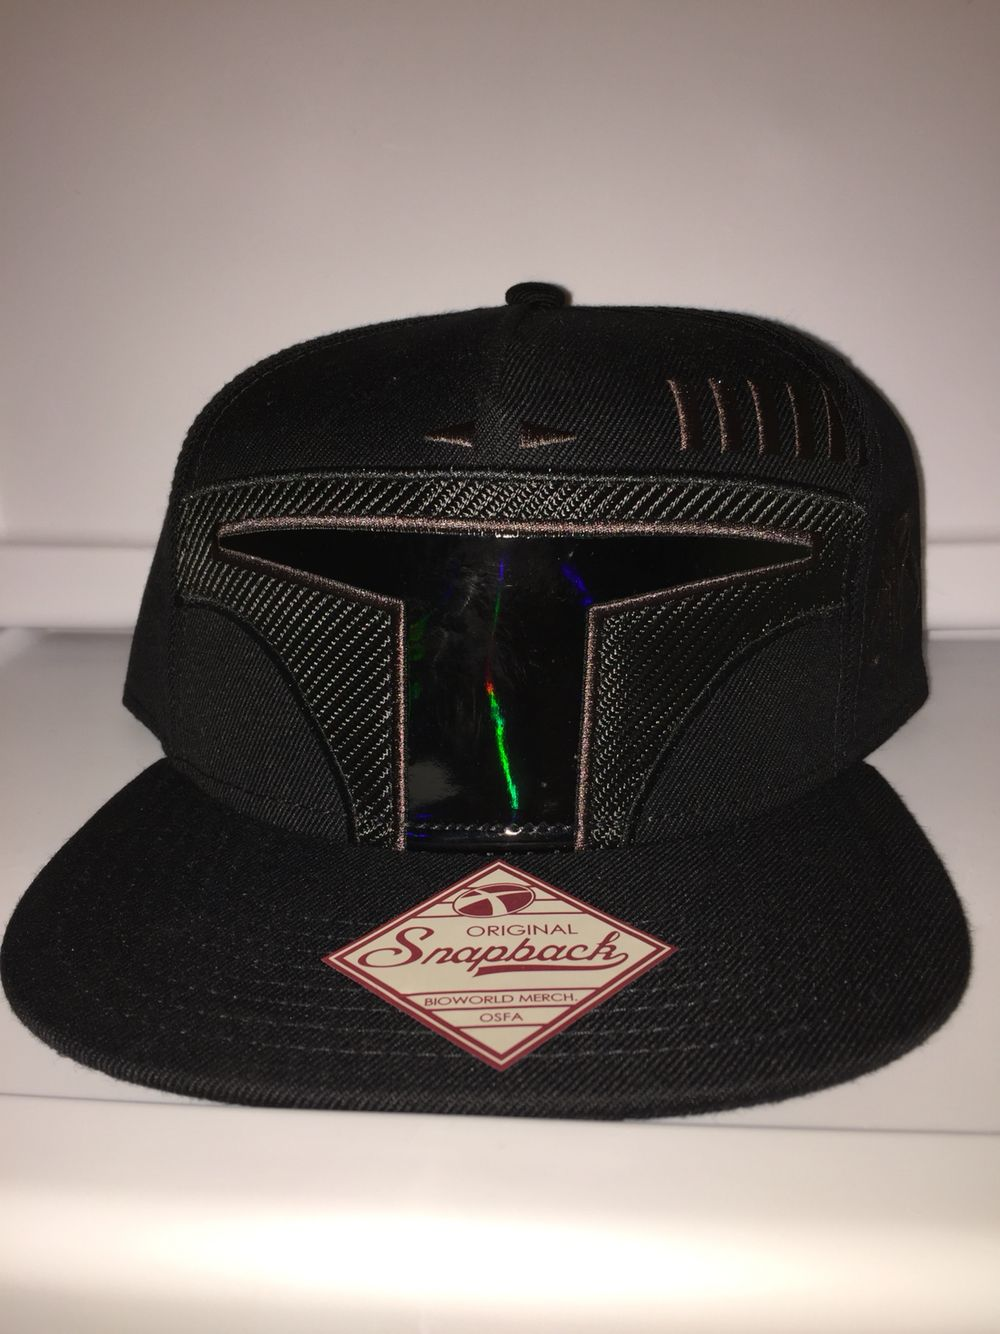 3a499c28116ea Bioworld SnapBack Star Wars warriors of Mandalore boba fett helmet all  black with brown stitching and boba fett symbol on the side